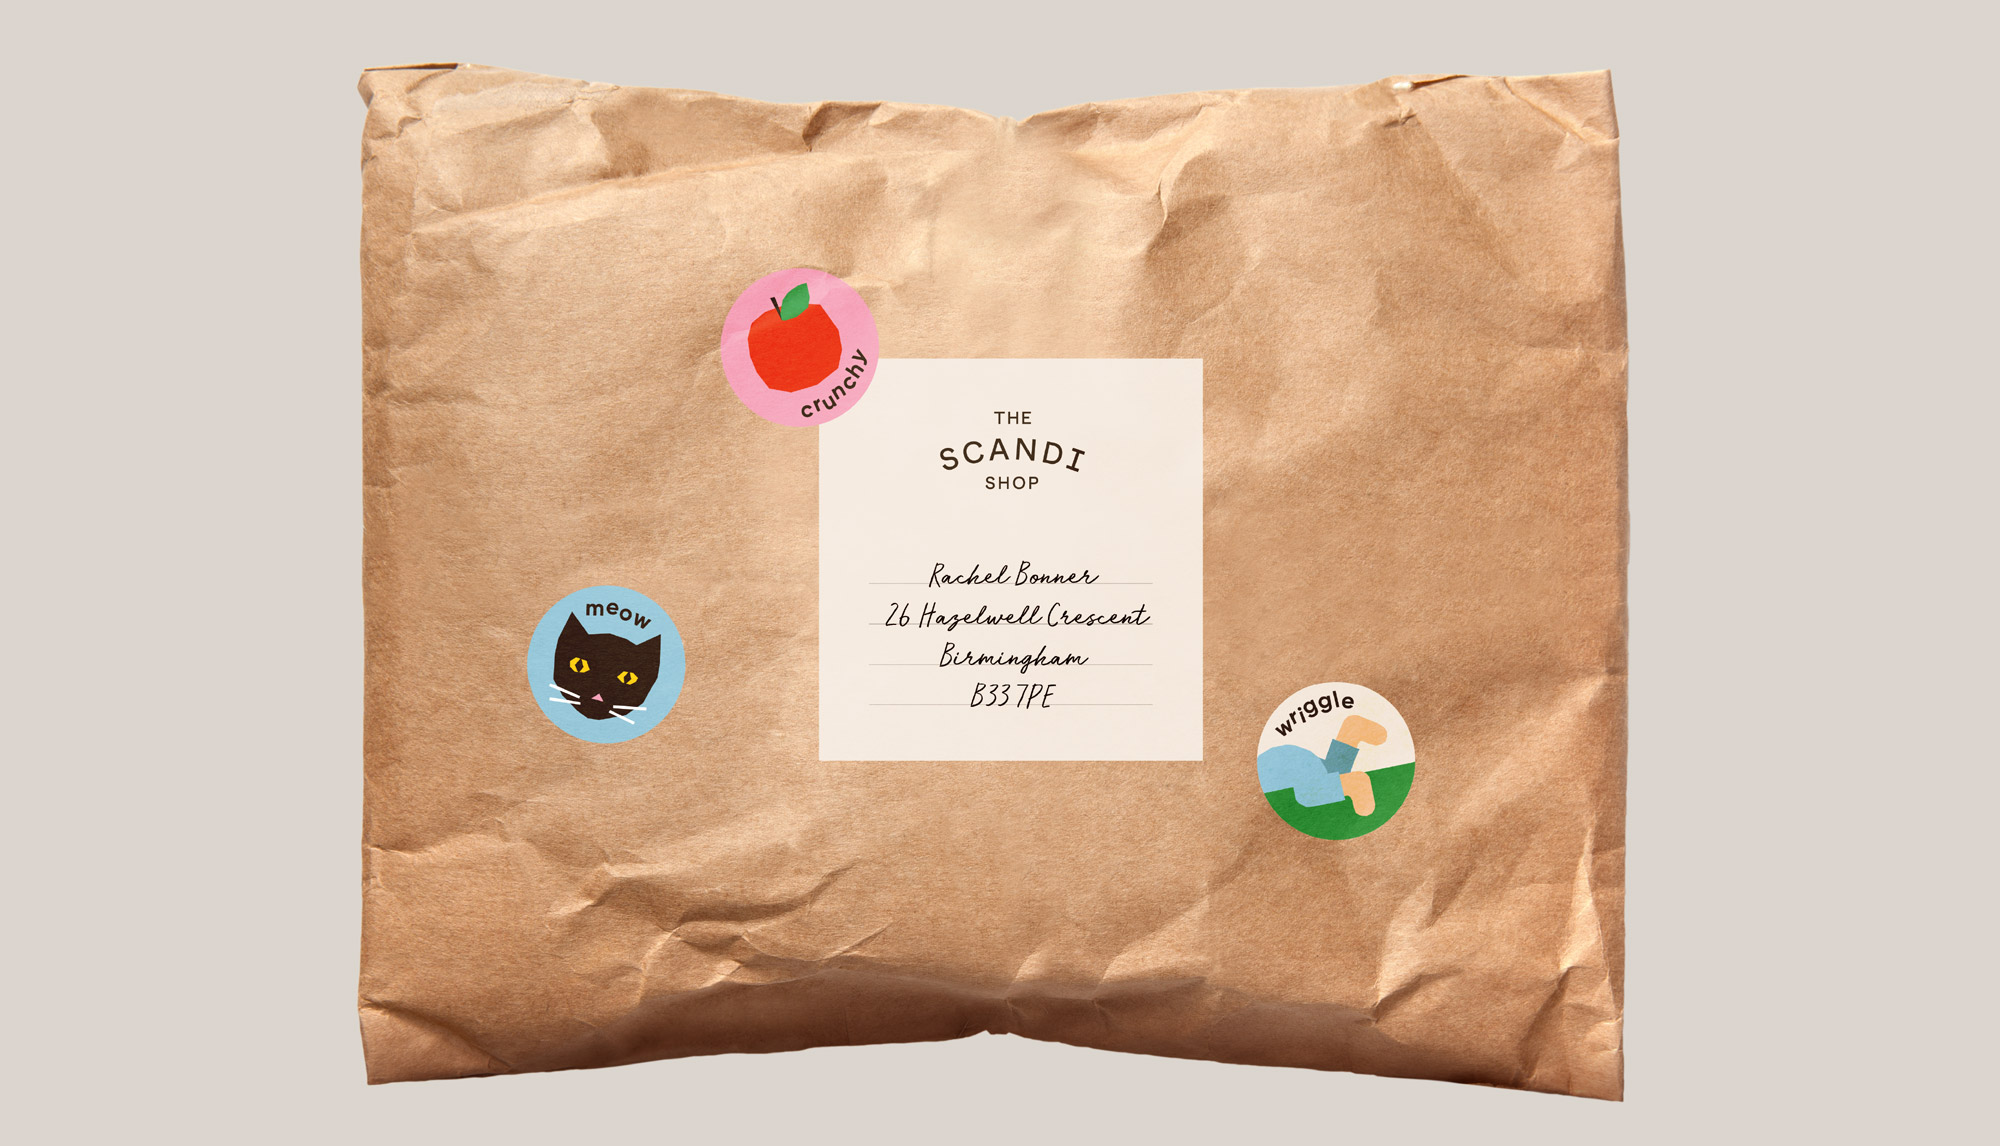 the scandi shop packaging design and stickers